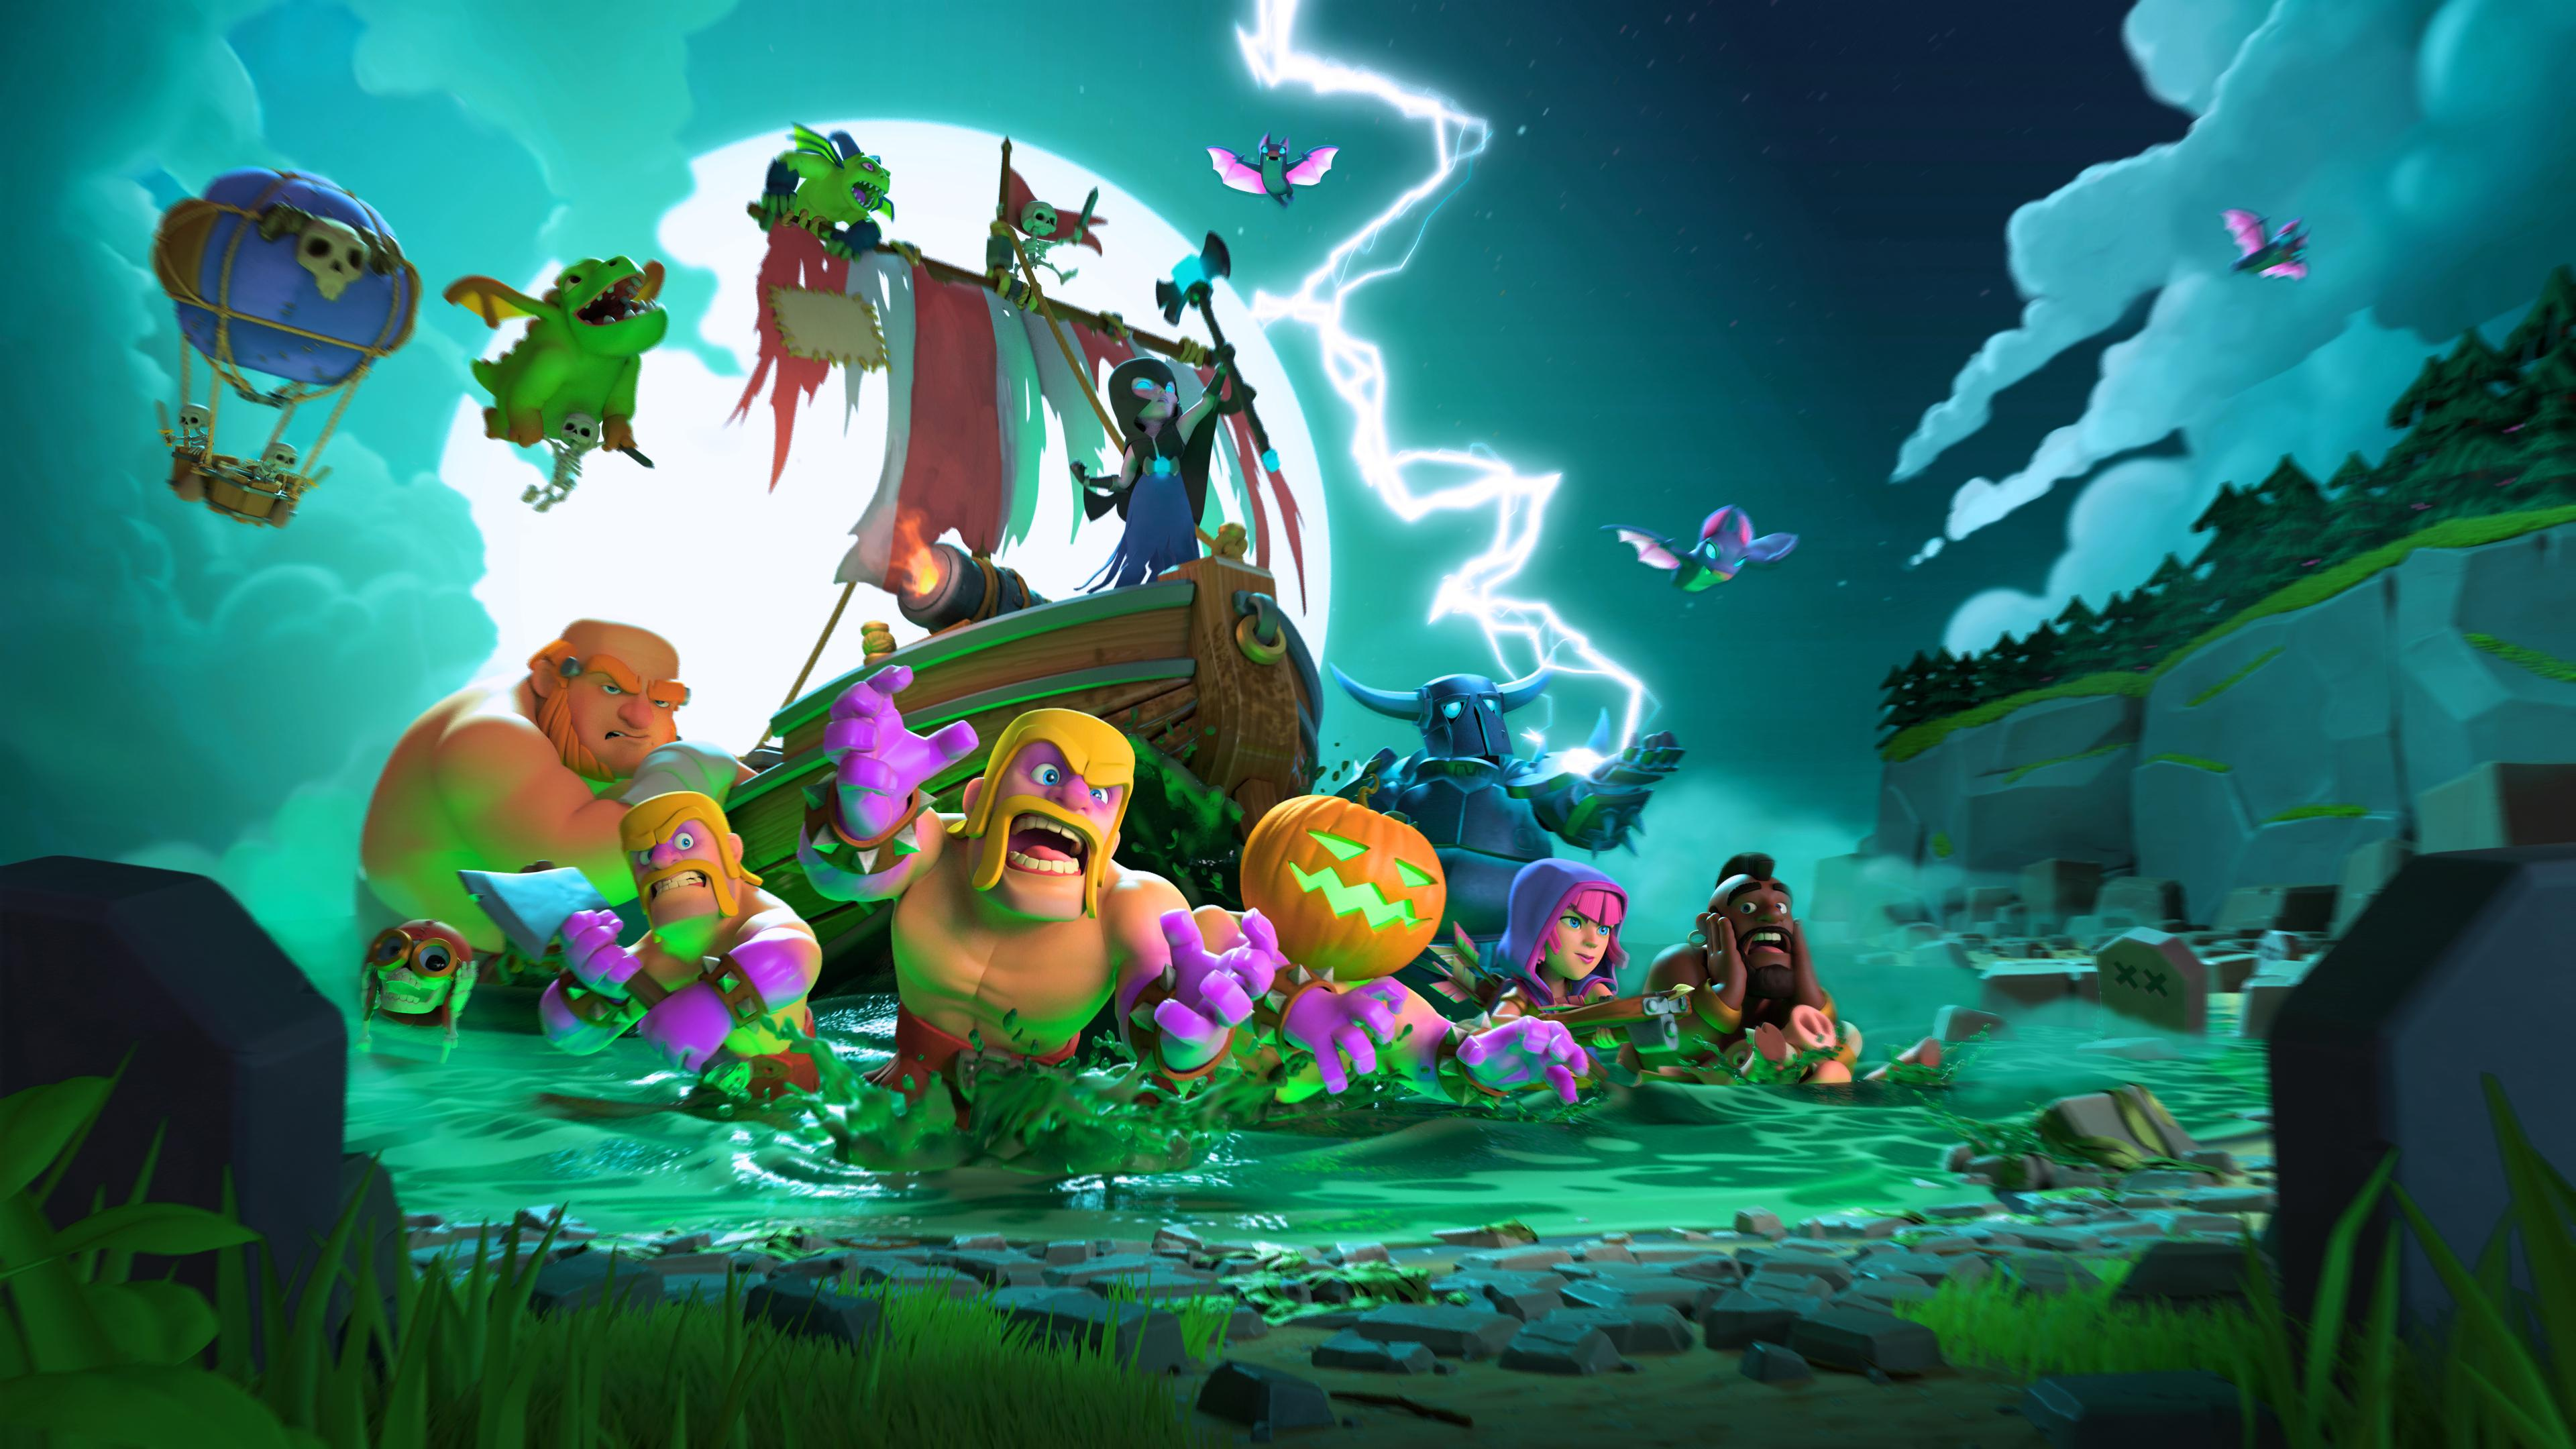 Clash Of Clans Halloween Wallpaper Background 62283 3840x2160px 3840x2160